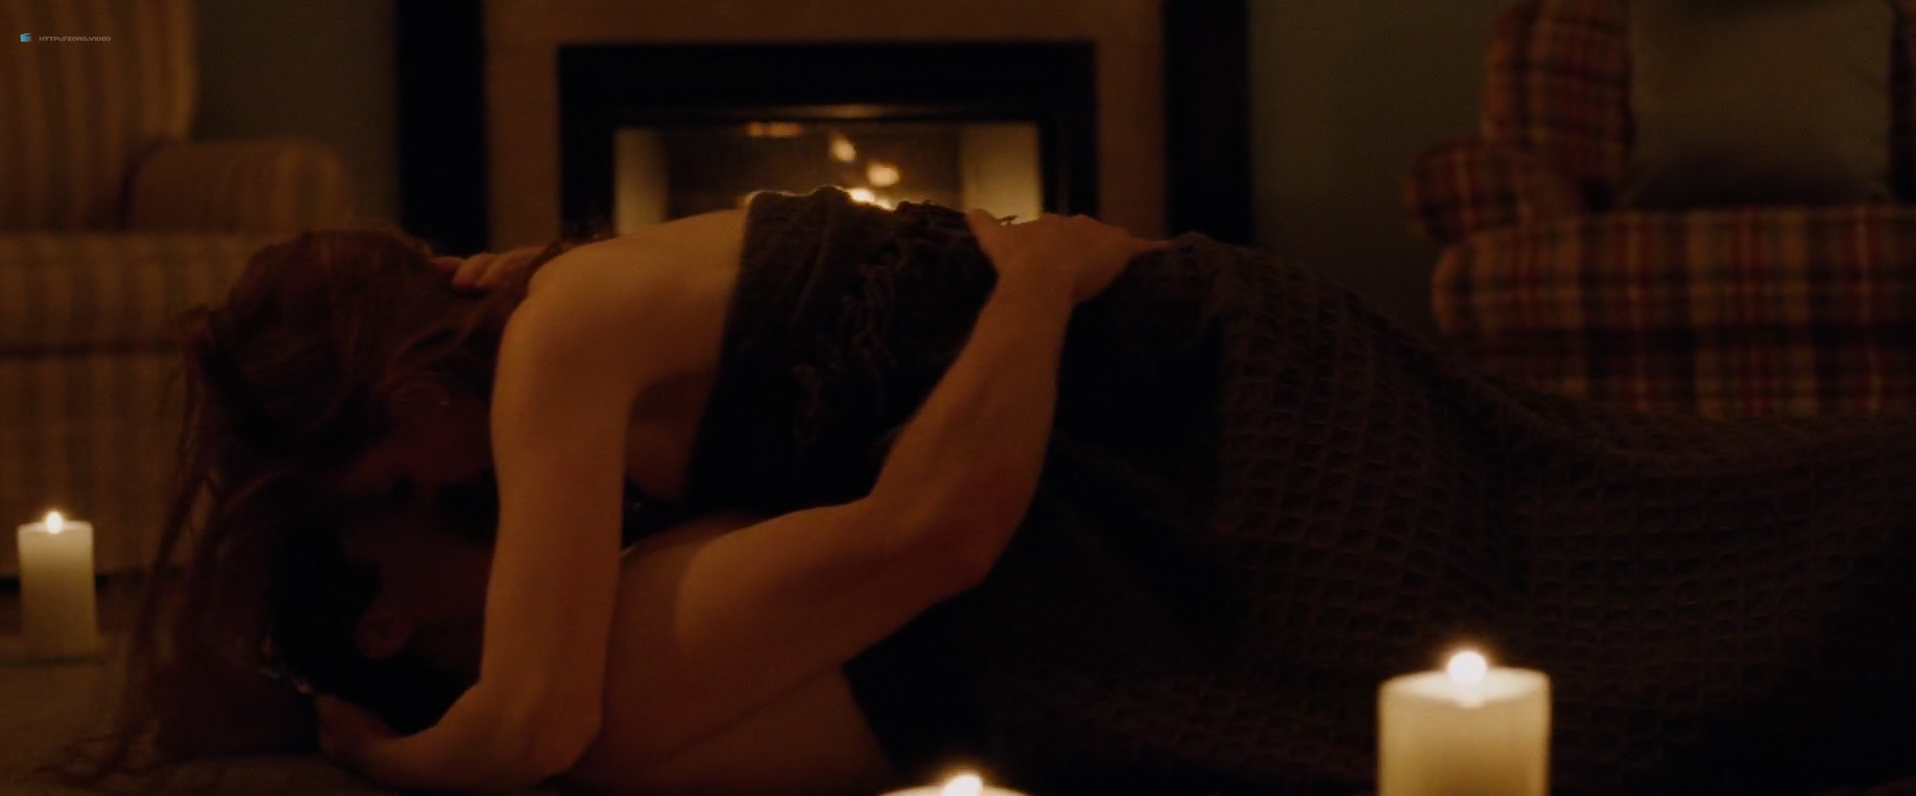 Isla-Fisher-hot-and-sexy-and-Gal-Gadot-hot-in-lingerie-Keeping-Up-with-the-Joneses-2016-HD-1080p-Web-Dl-2.jpg